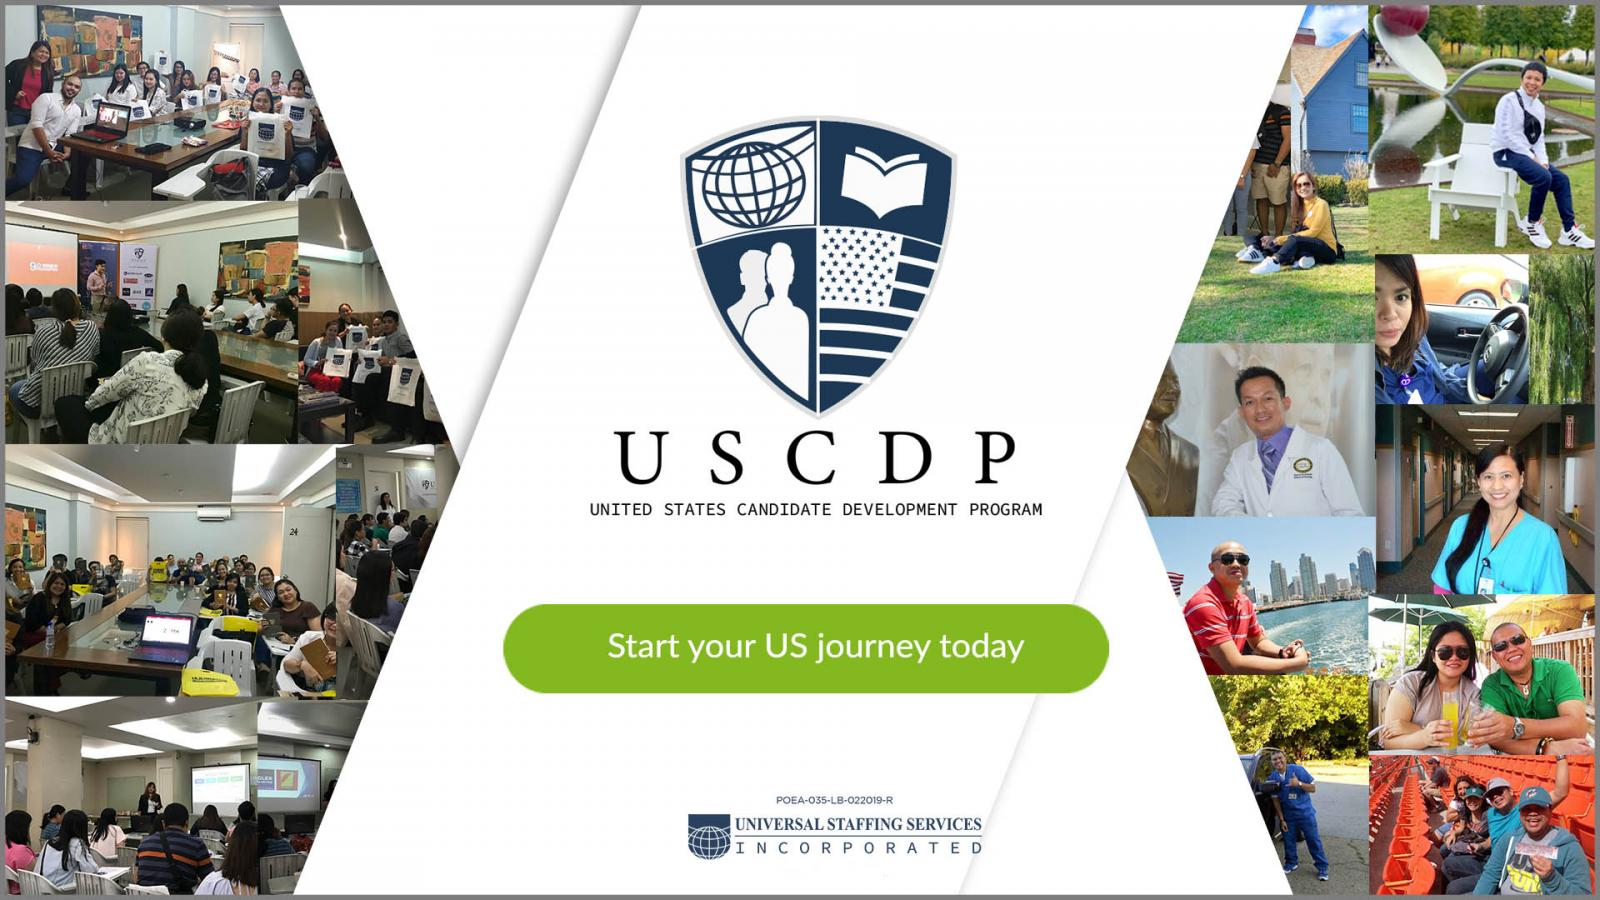 USCDP Start Your US Journey CTA